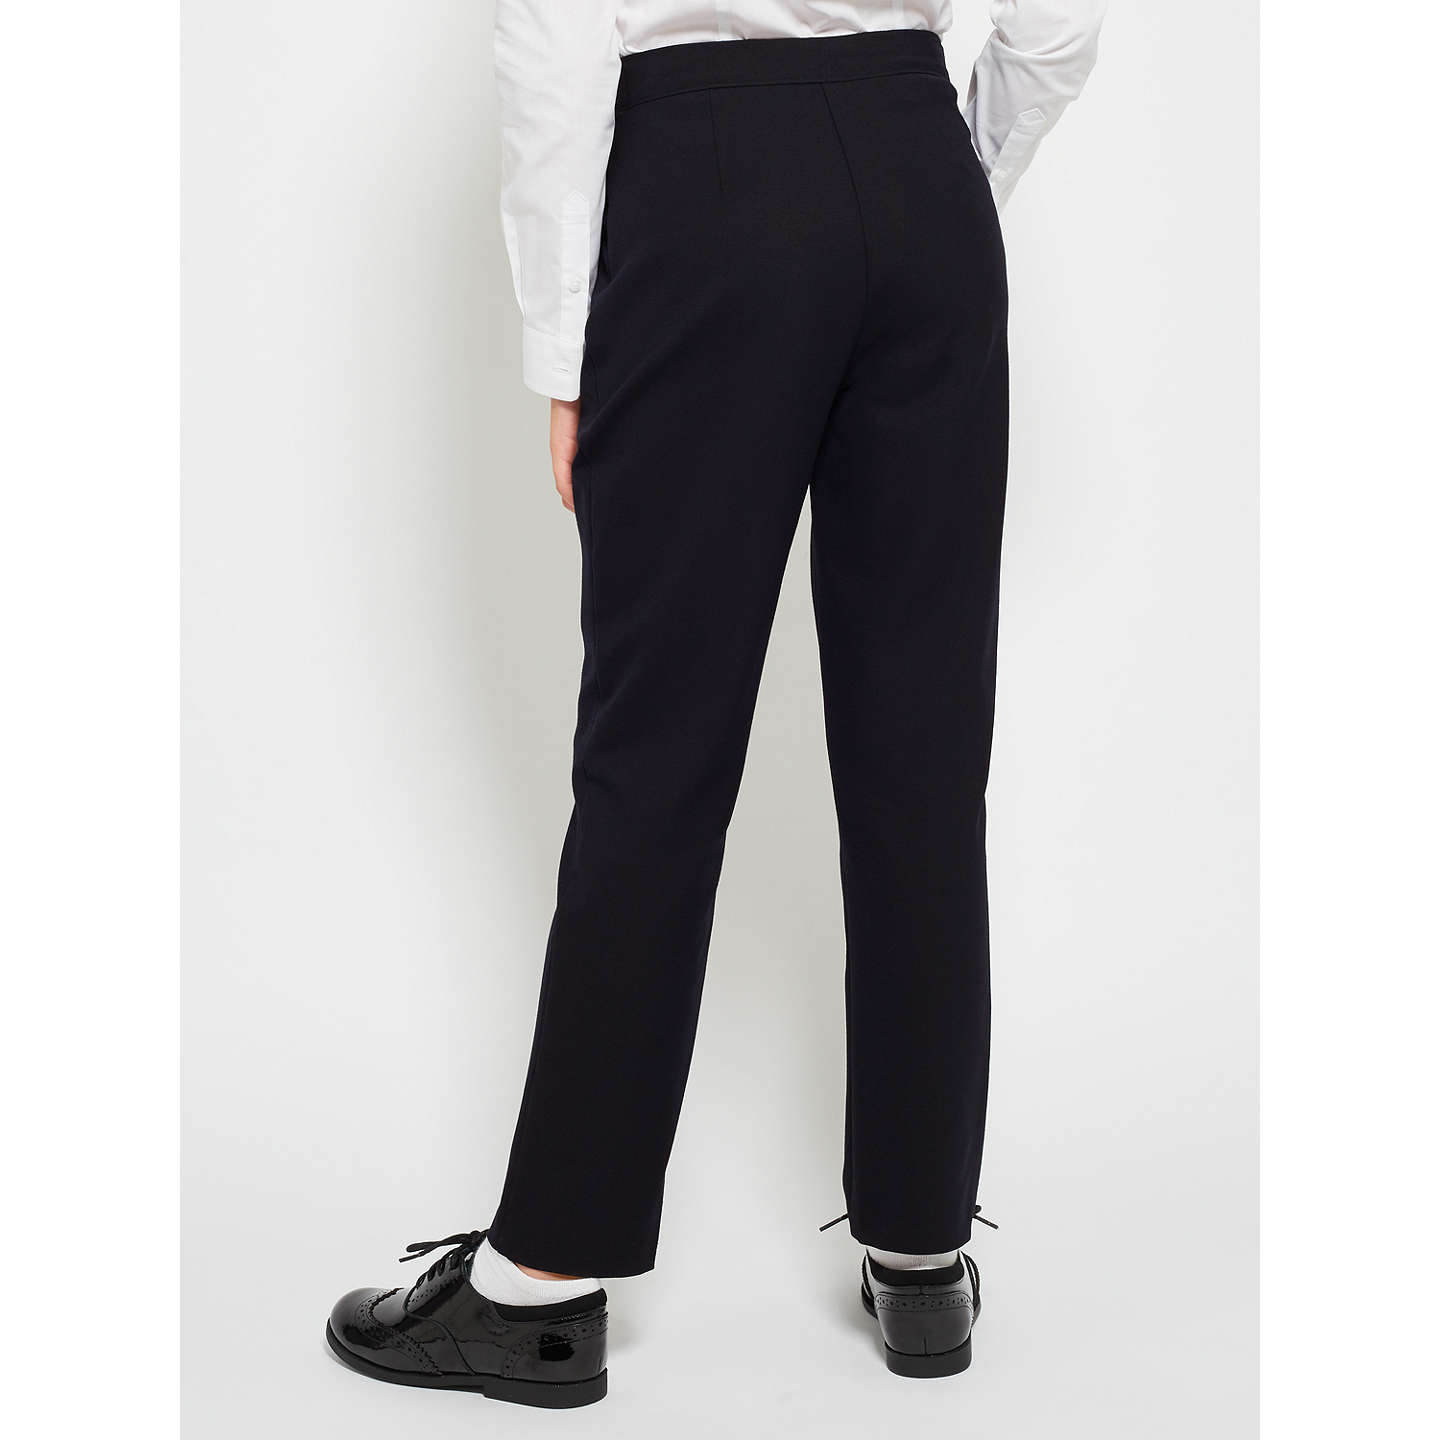 BuyJohn Lewis Girls' School Trousers, Navy, 4 years Online at johnlewis.com